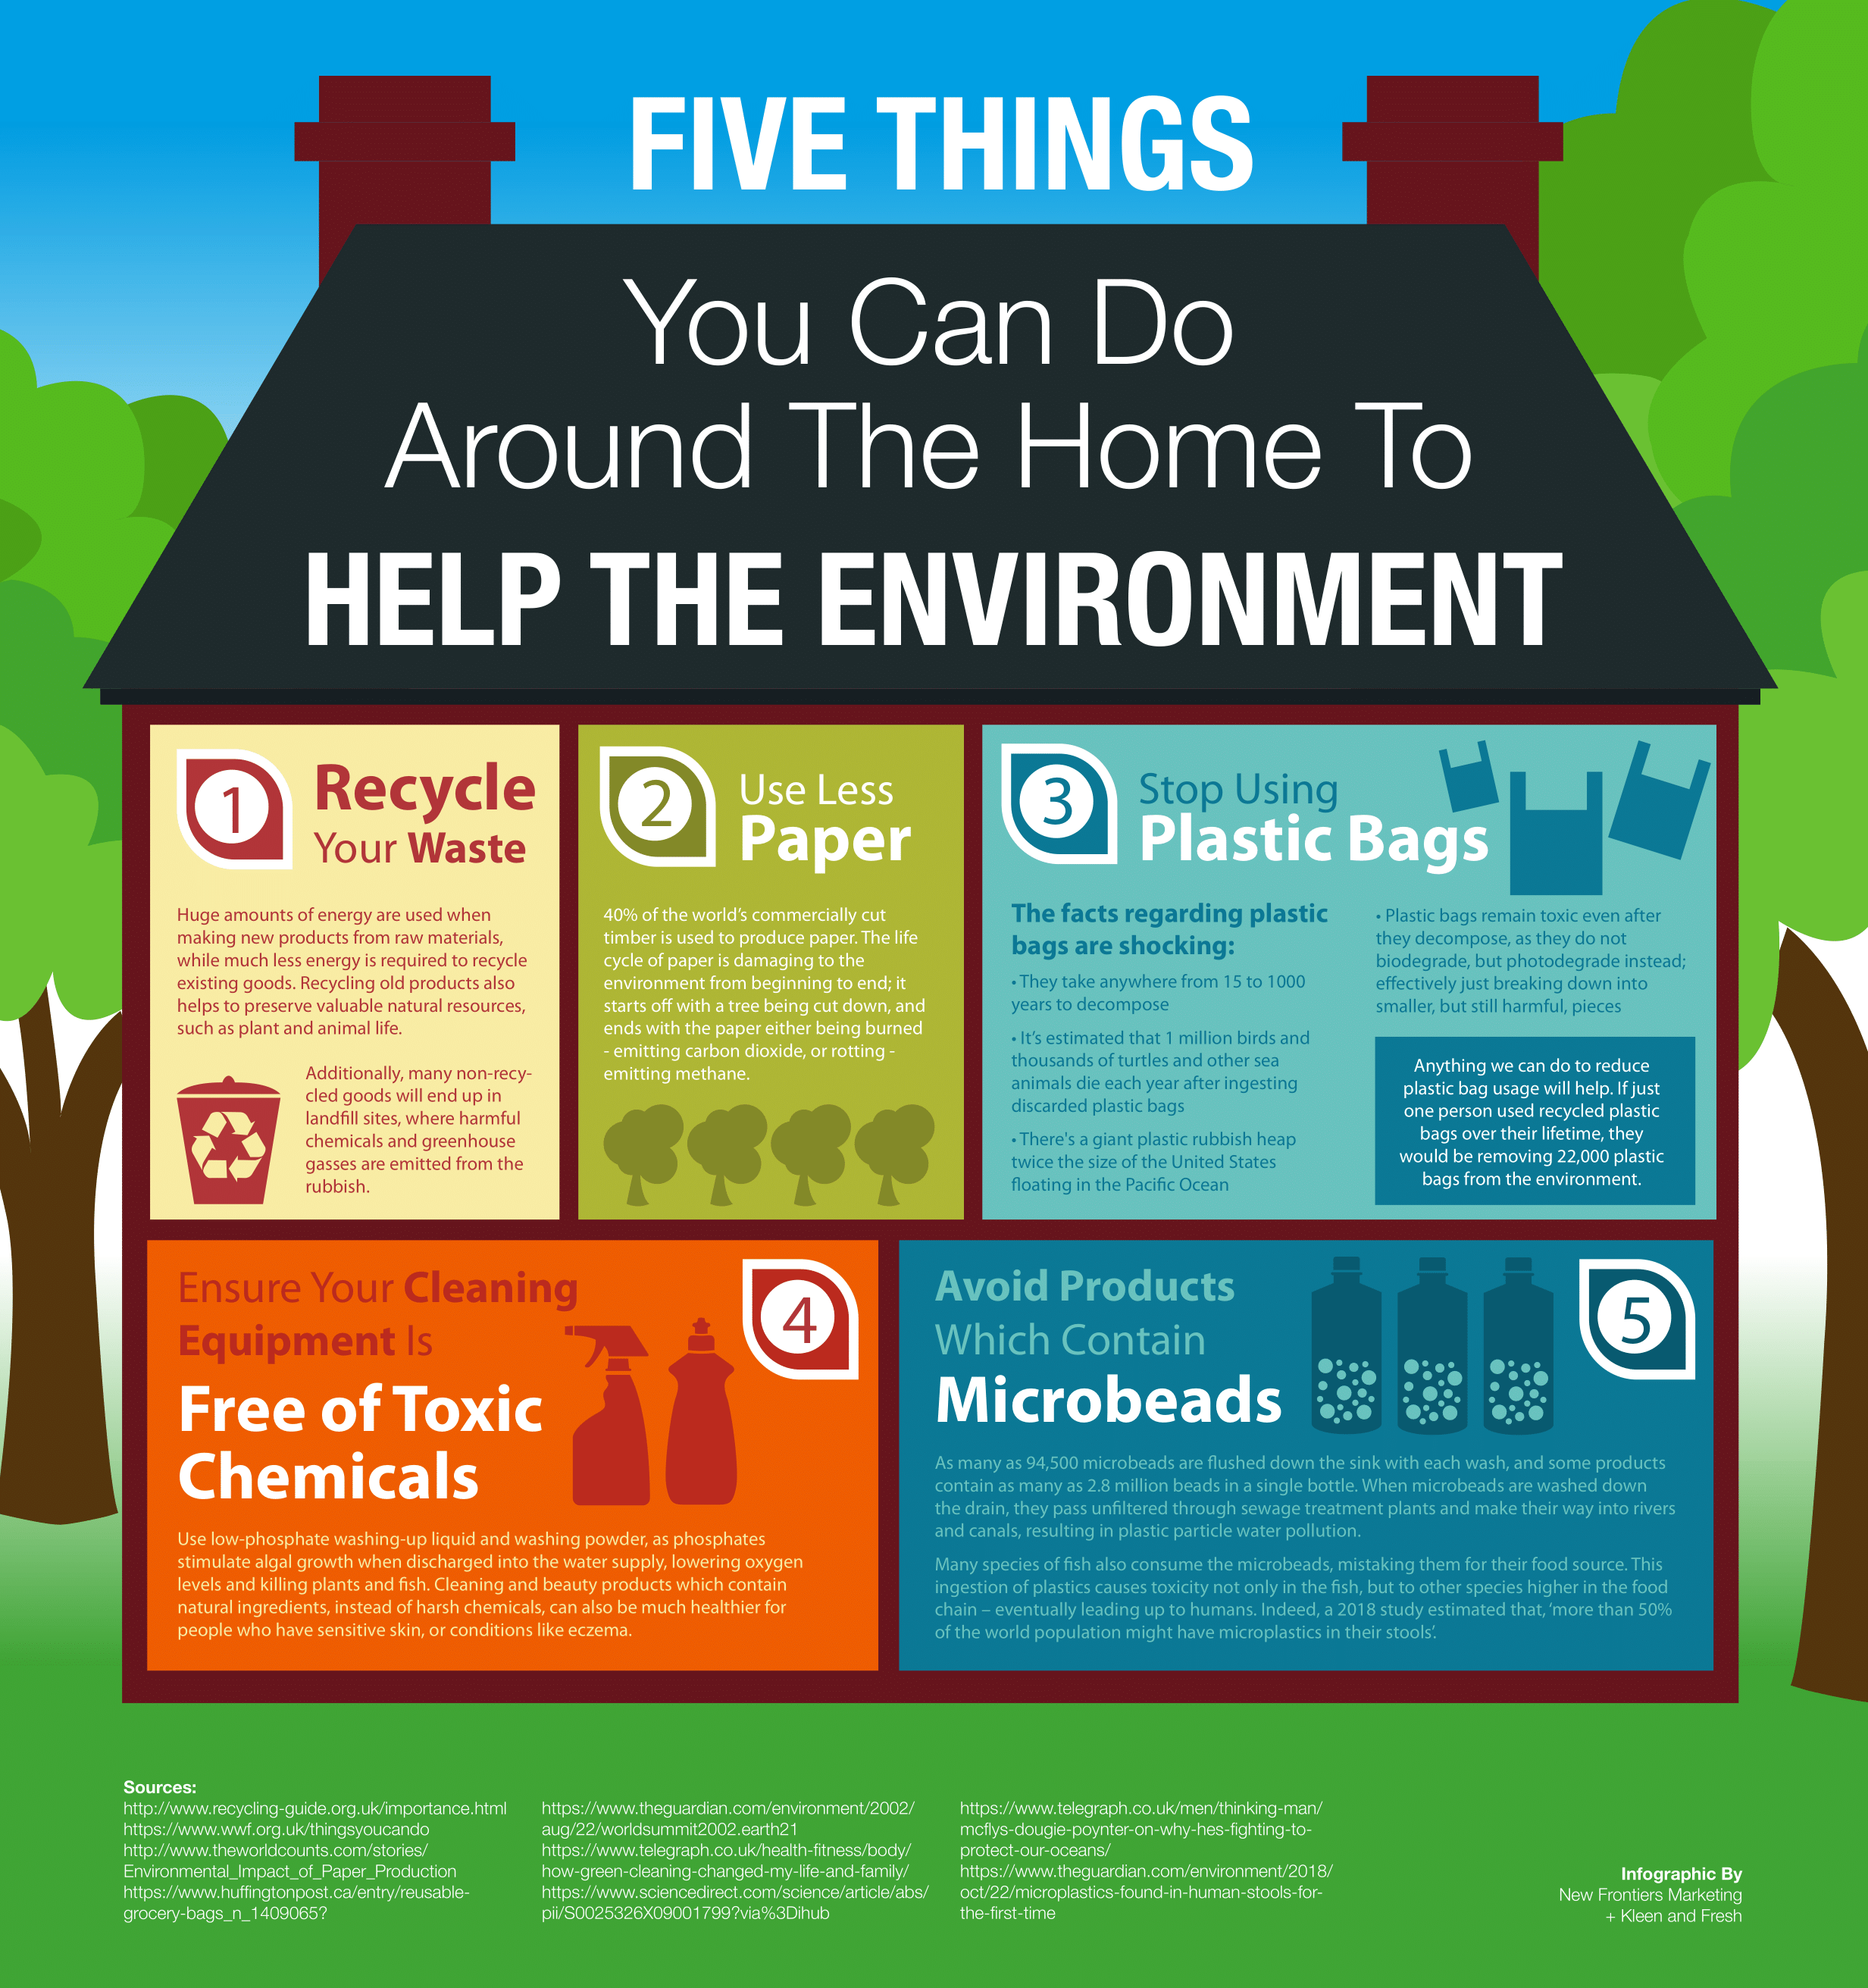 5 Ways You Can Save The Environment From Home - Infographic